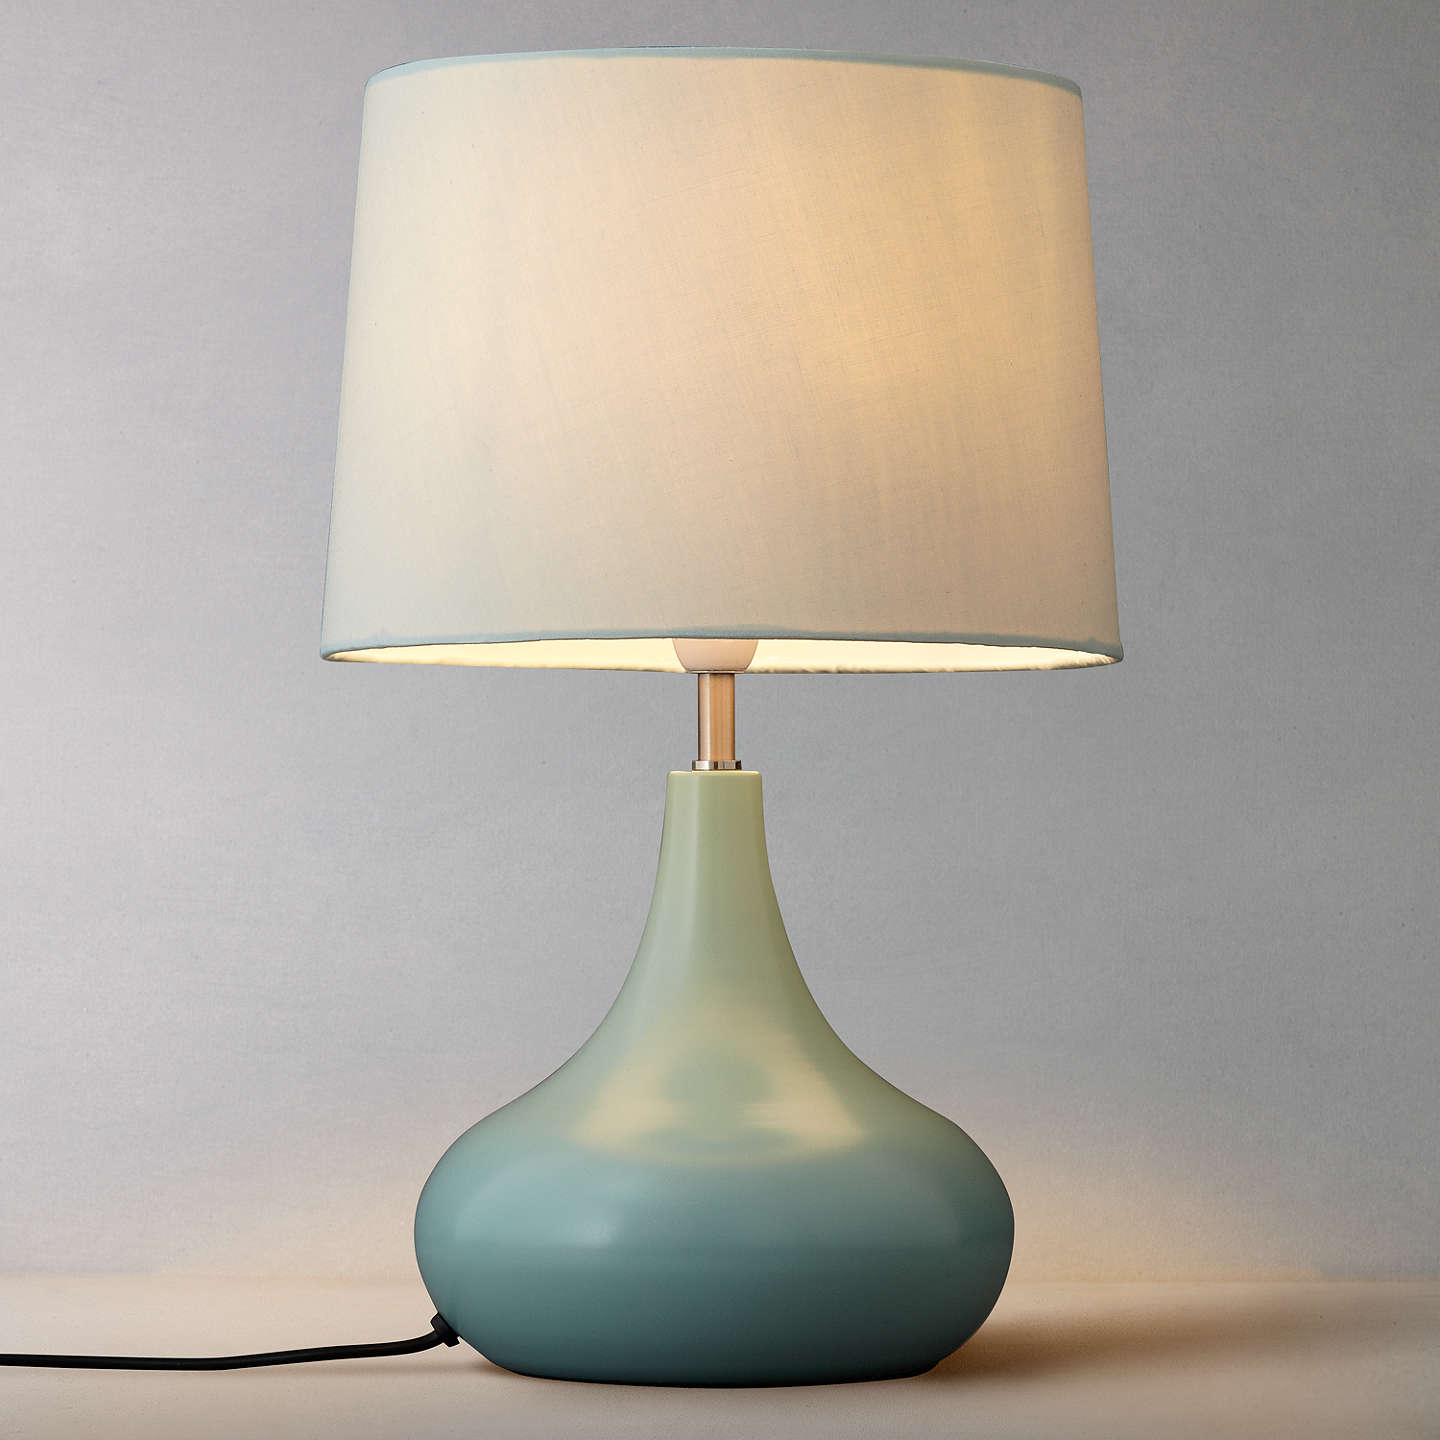 john lewis laura touch lamp fir green at john lewis. Black Bedroom Furniture Sets. Home Design Ideas